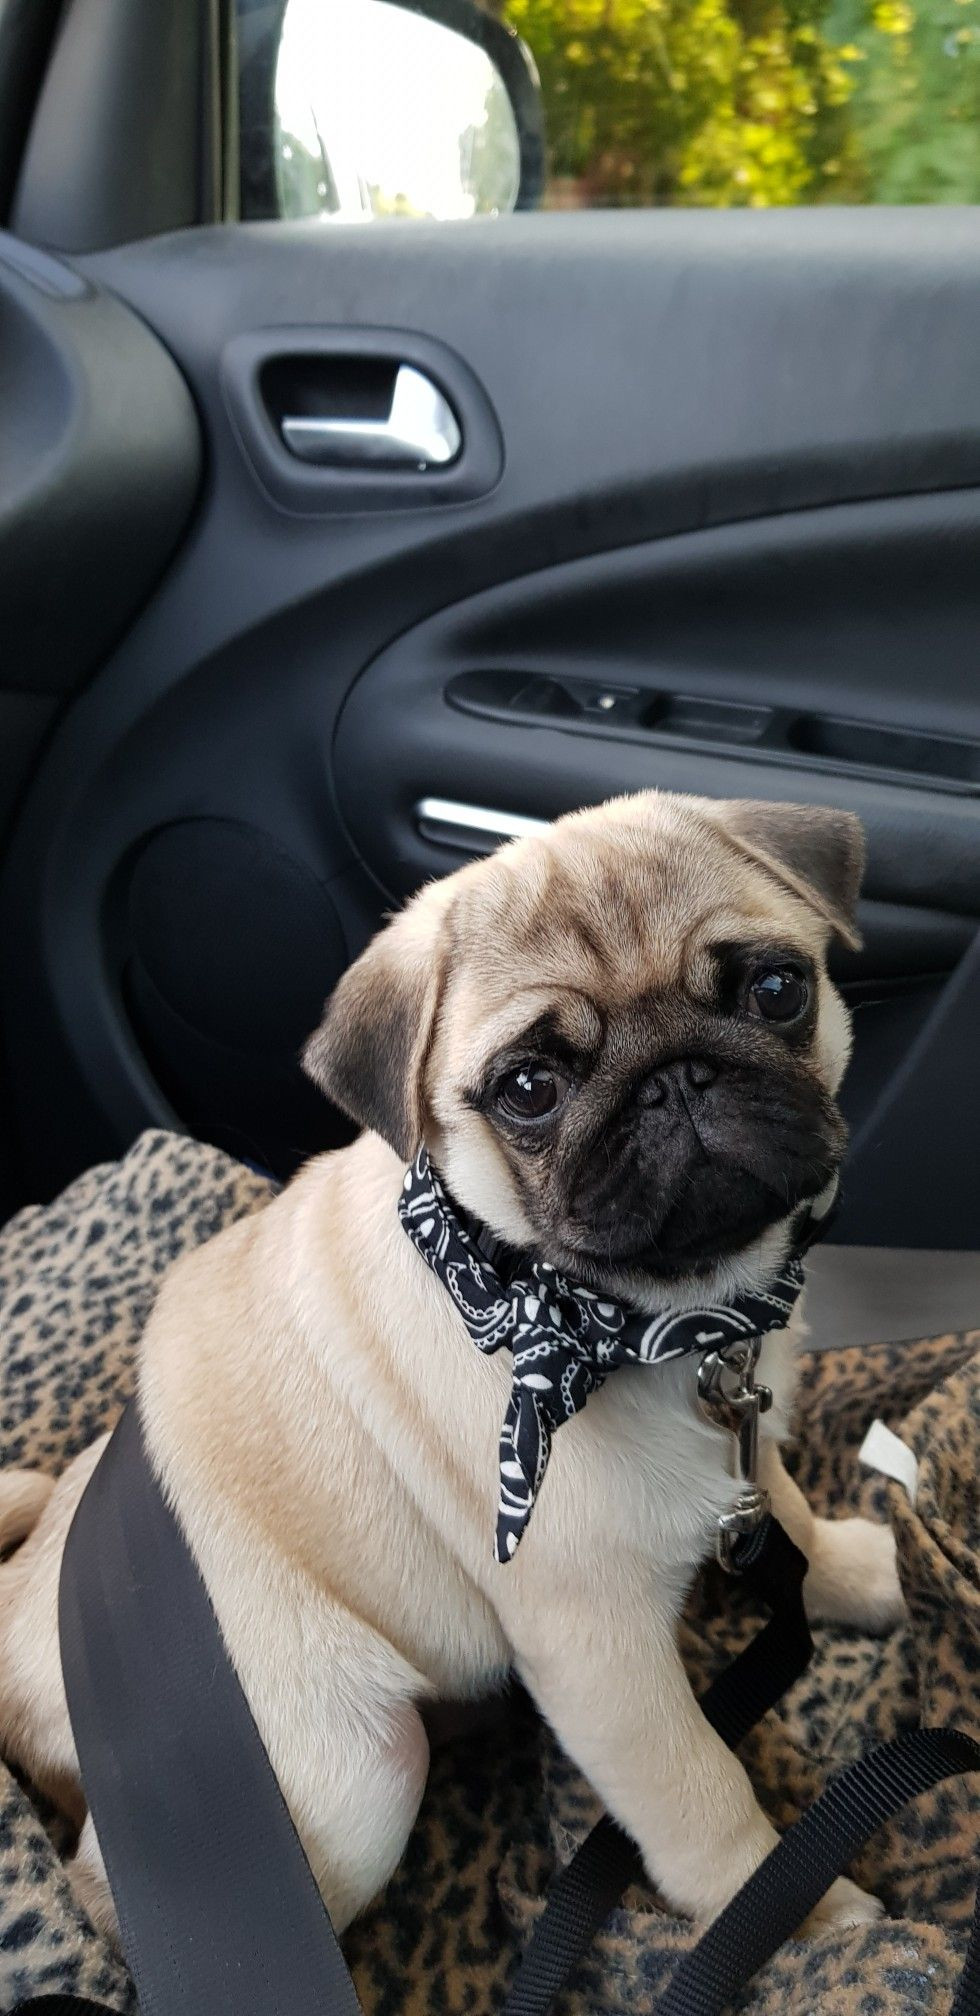 Precious Face Pug Fever Pinterest Pugs Animals And Dogs